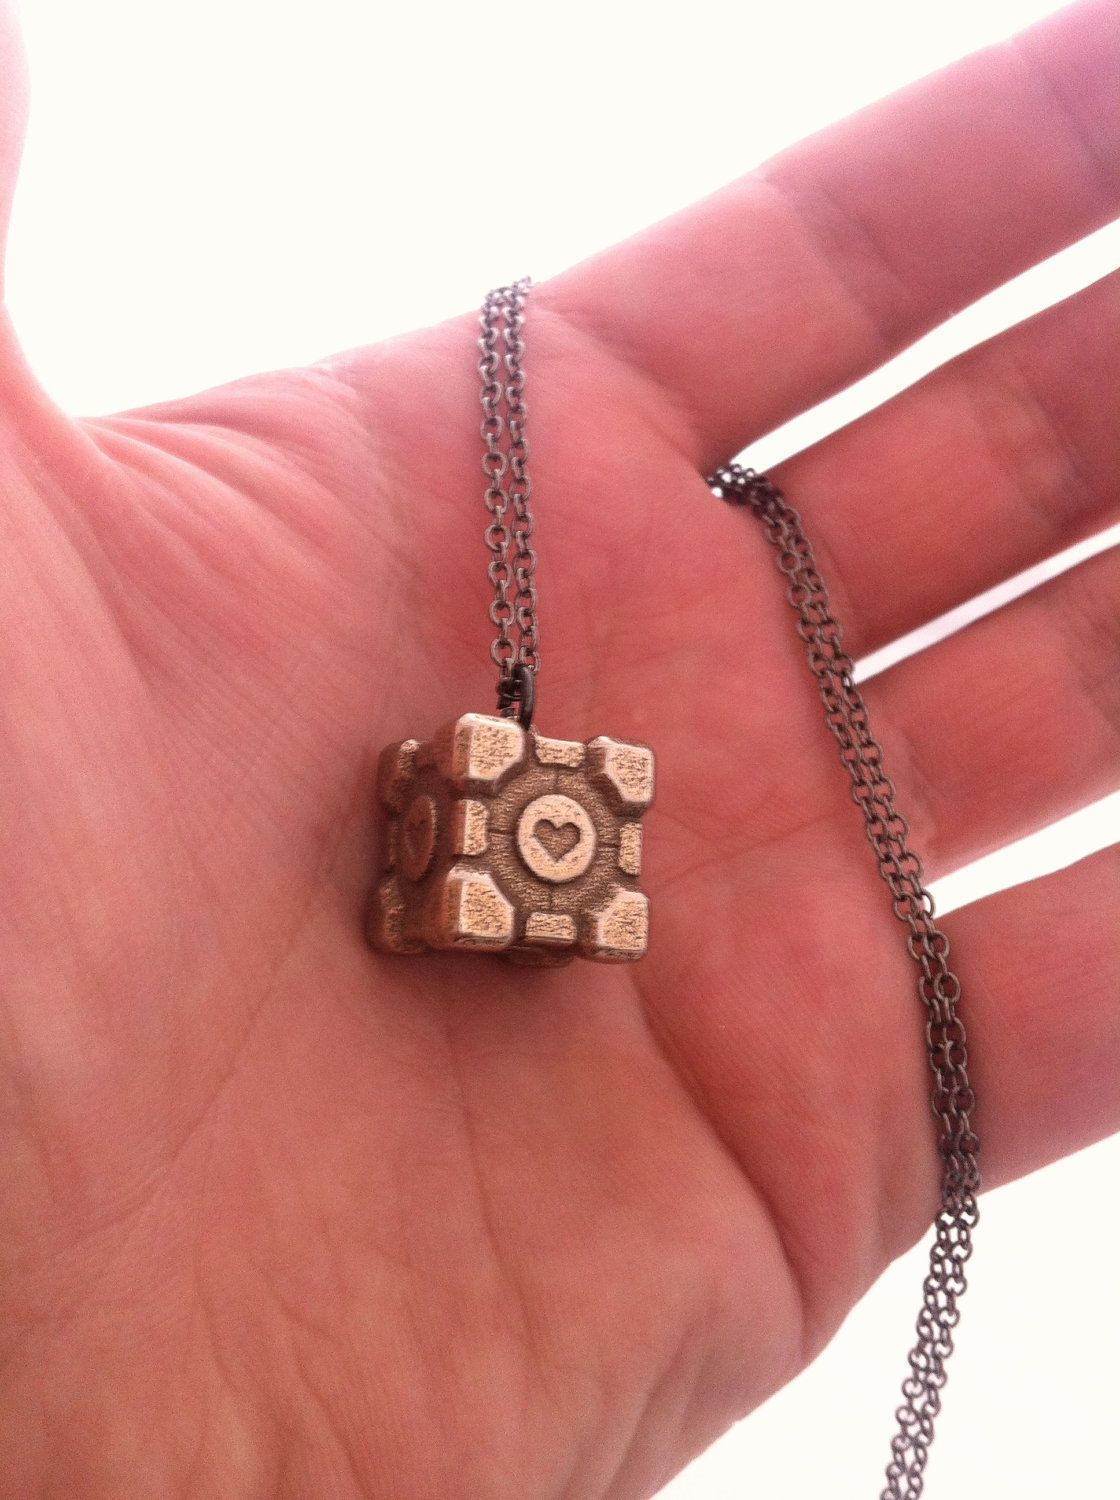 Weighted Companion Cube Pendant - Stainless Steel. $29.00, via Etsy ...